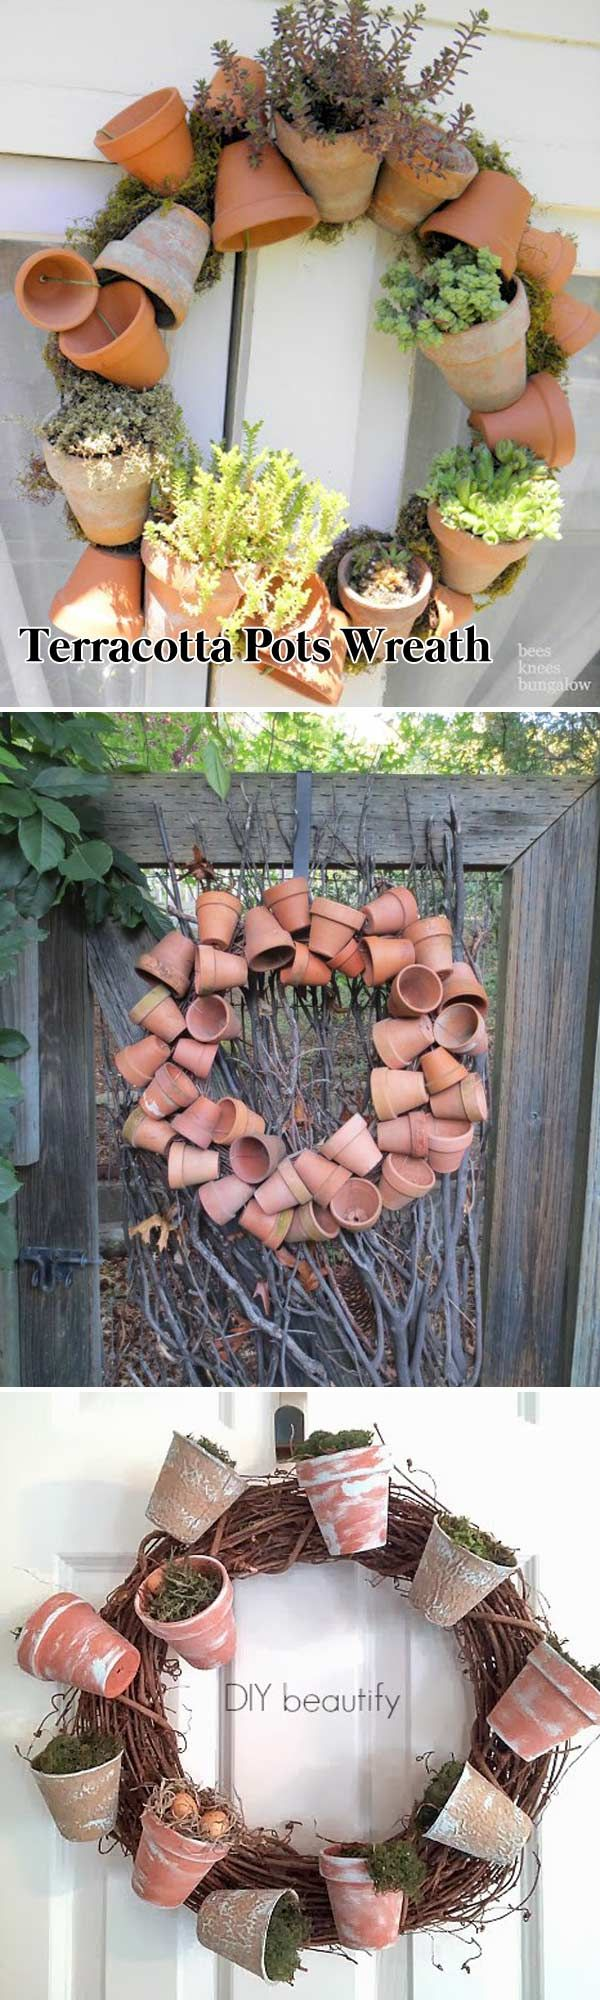 21 Clever Ideas to Adorn Garden and Yard with Terracotta Pots #hofideen